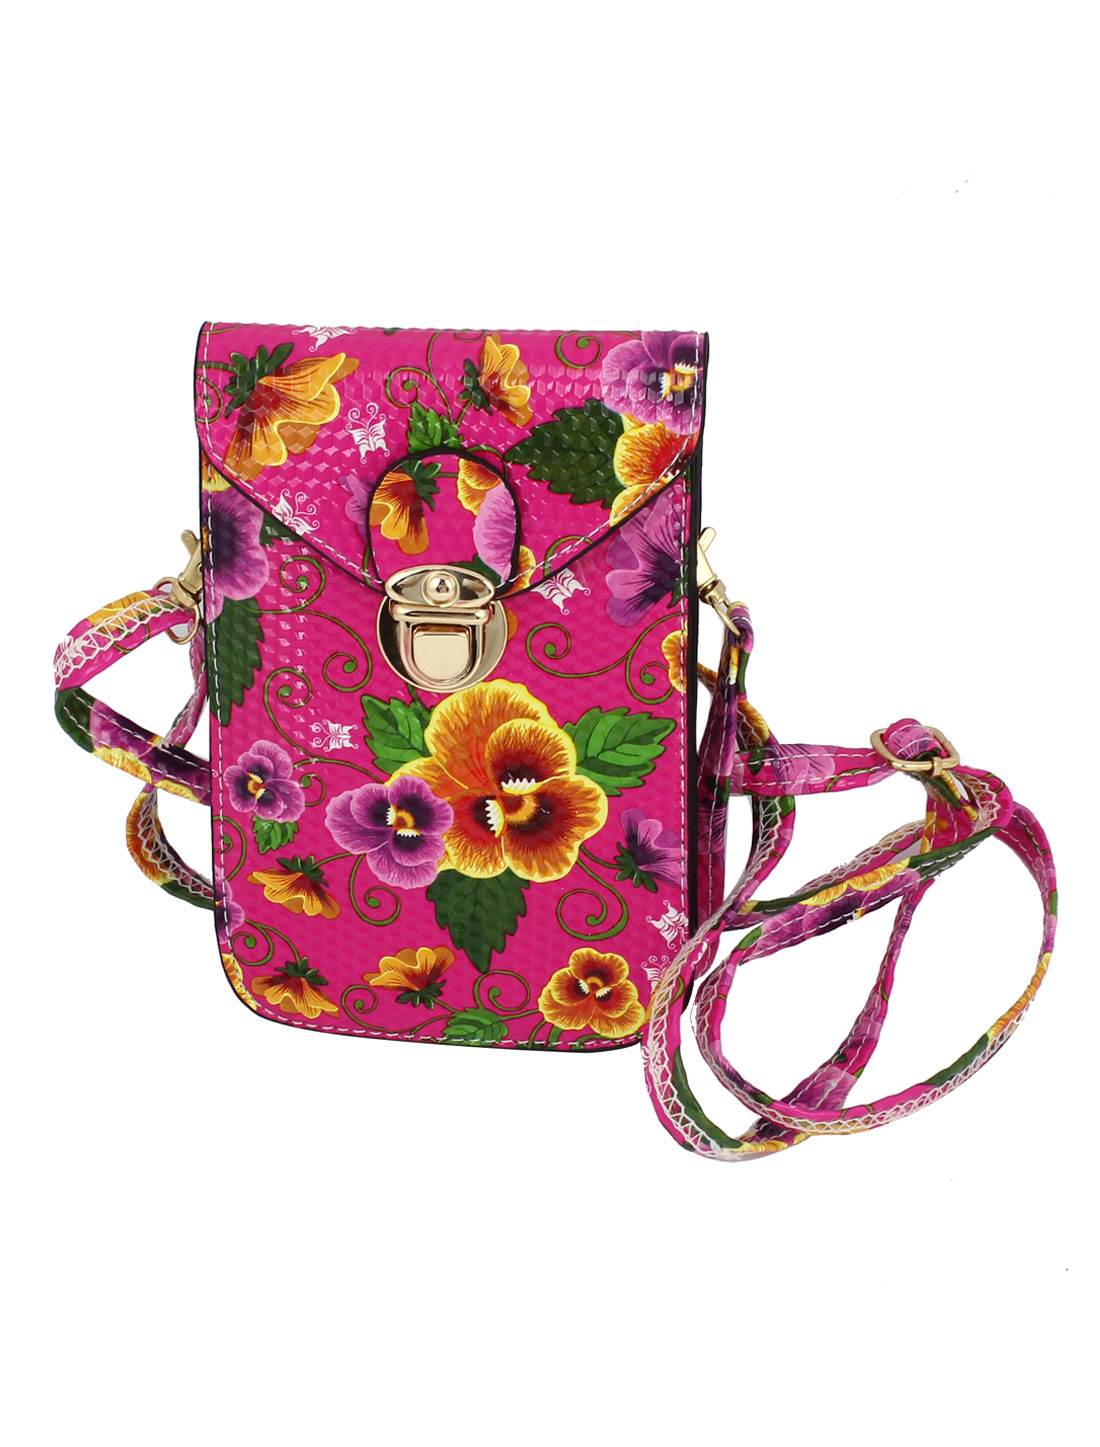 Ladies Faux Leather 2 Compartments Flower Printed Push Lock Closure Cross-Body Bag Purse Fuchsia